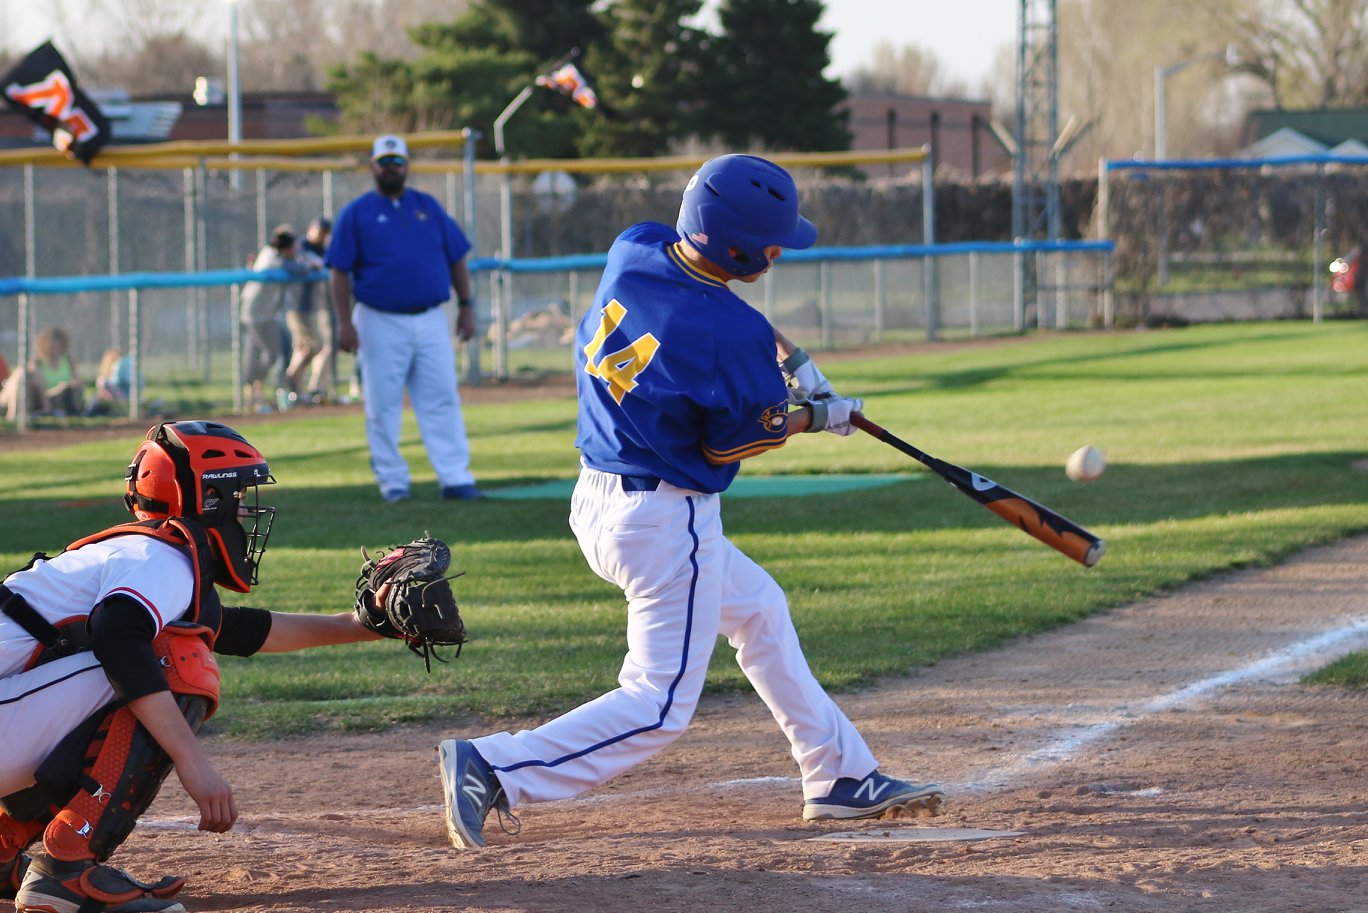 STMA Advances to Section Championship